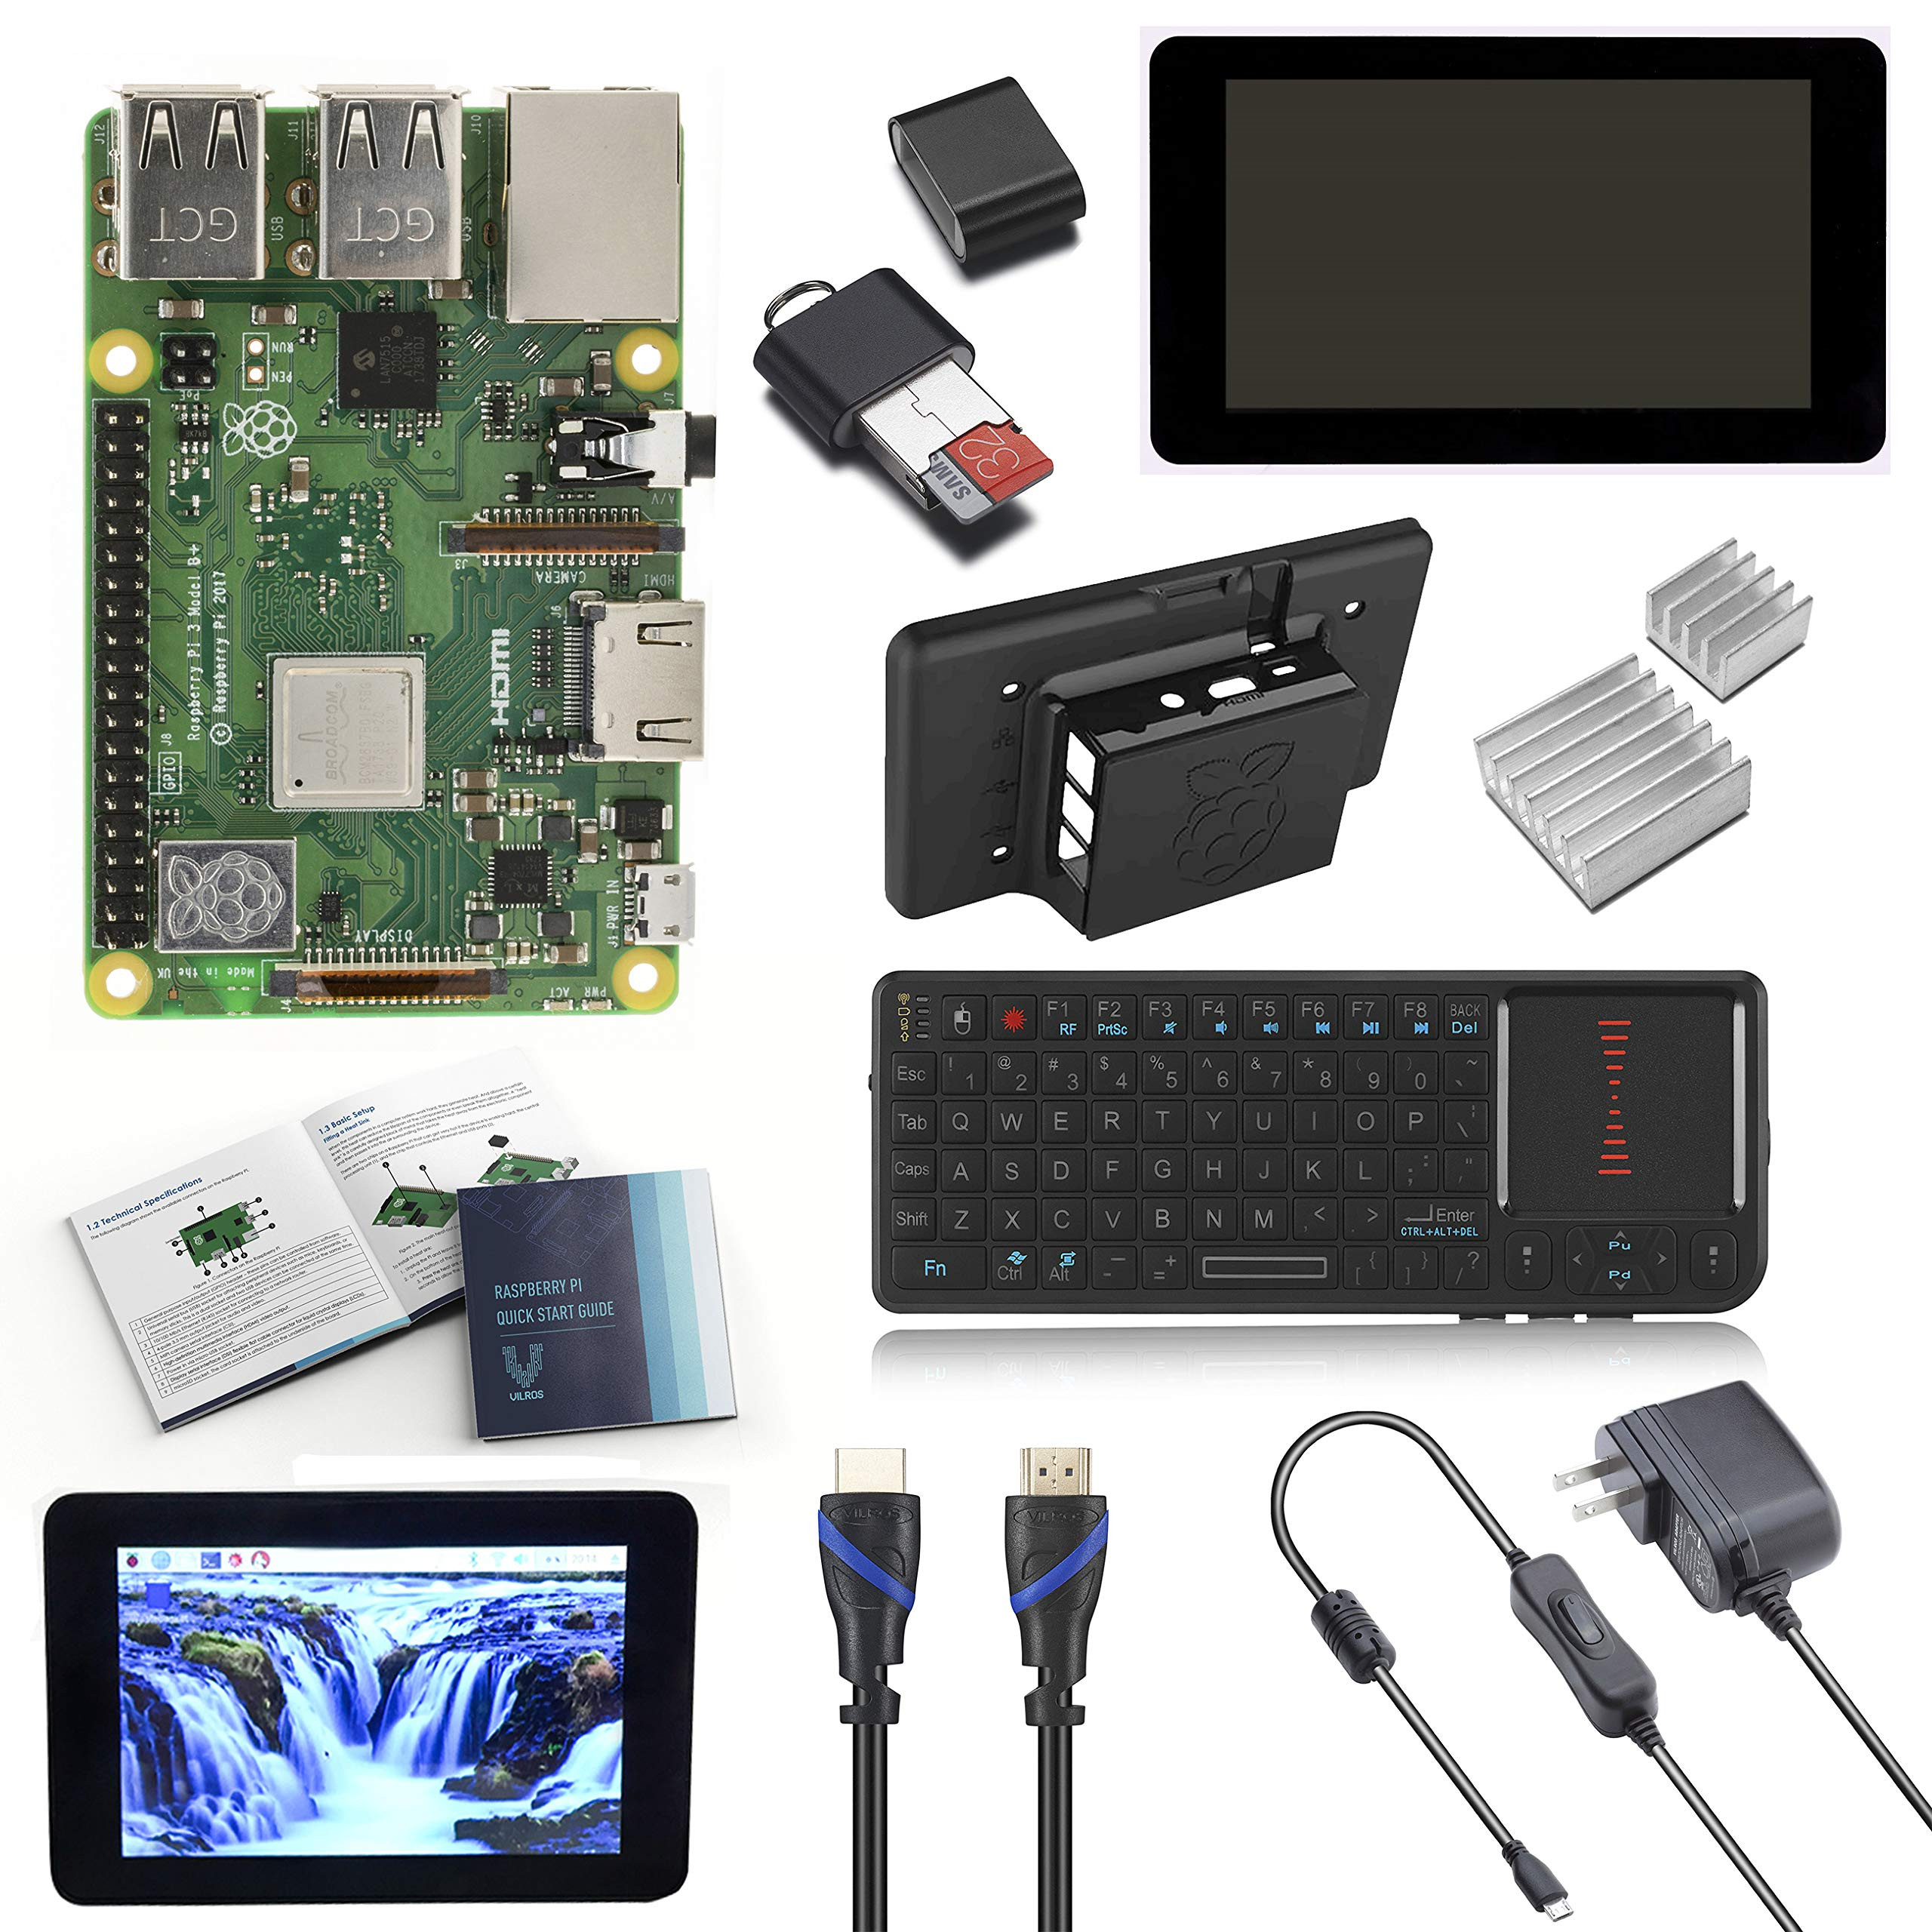 V-Kits Raspberry Pi 3 Model B+ (Plus) Complete Starter Kit with 7'' LCD Touchscreen Monitor & Mini Keyboard with Touchpad Combo by Vilros (Image #1)